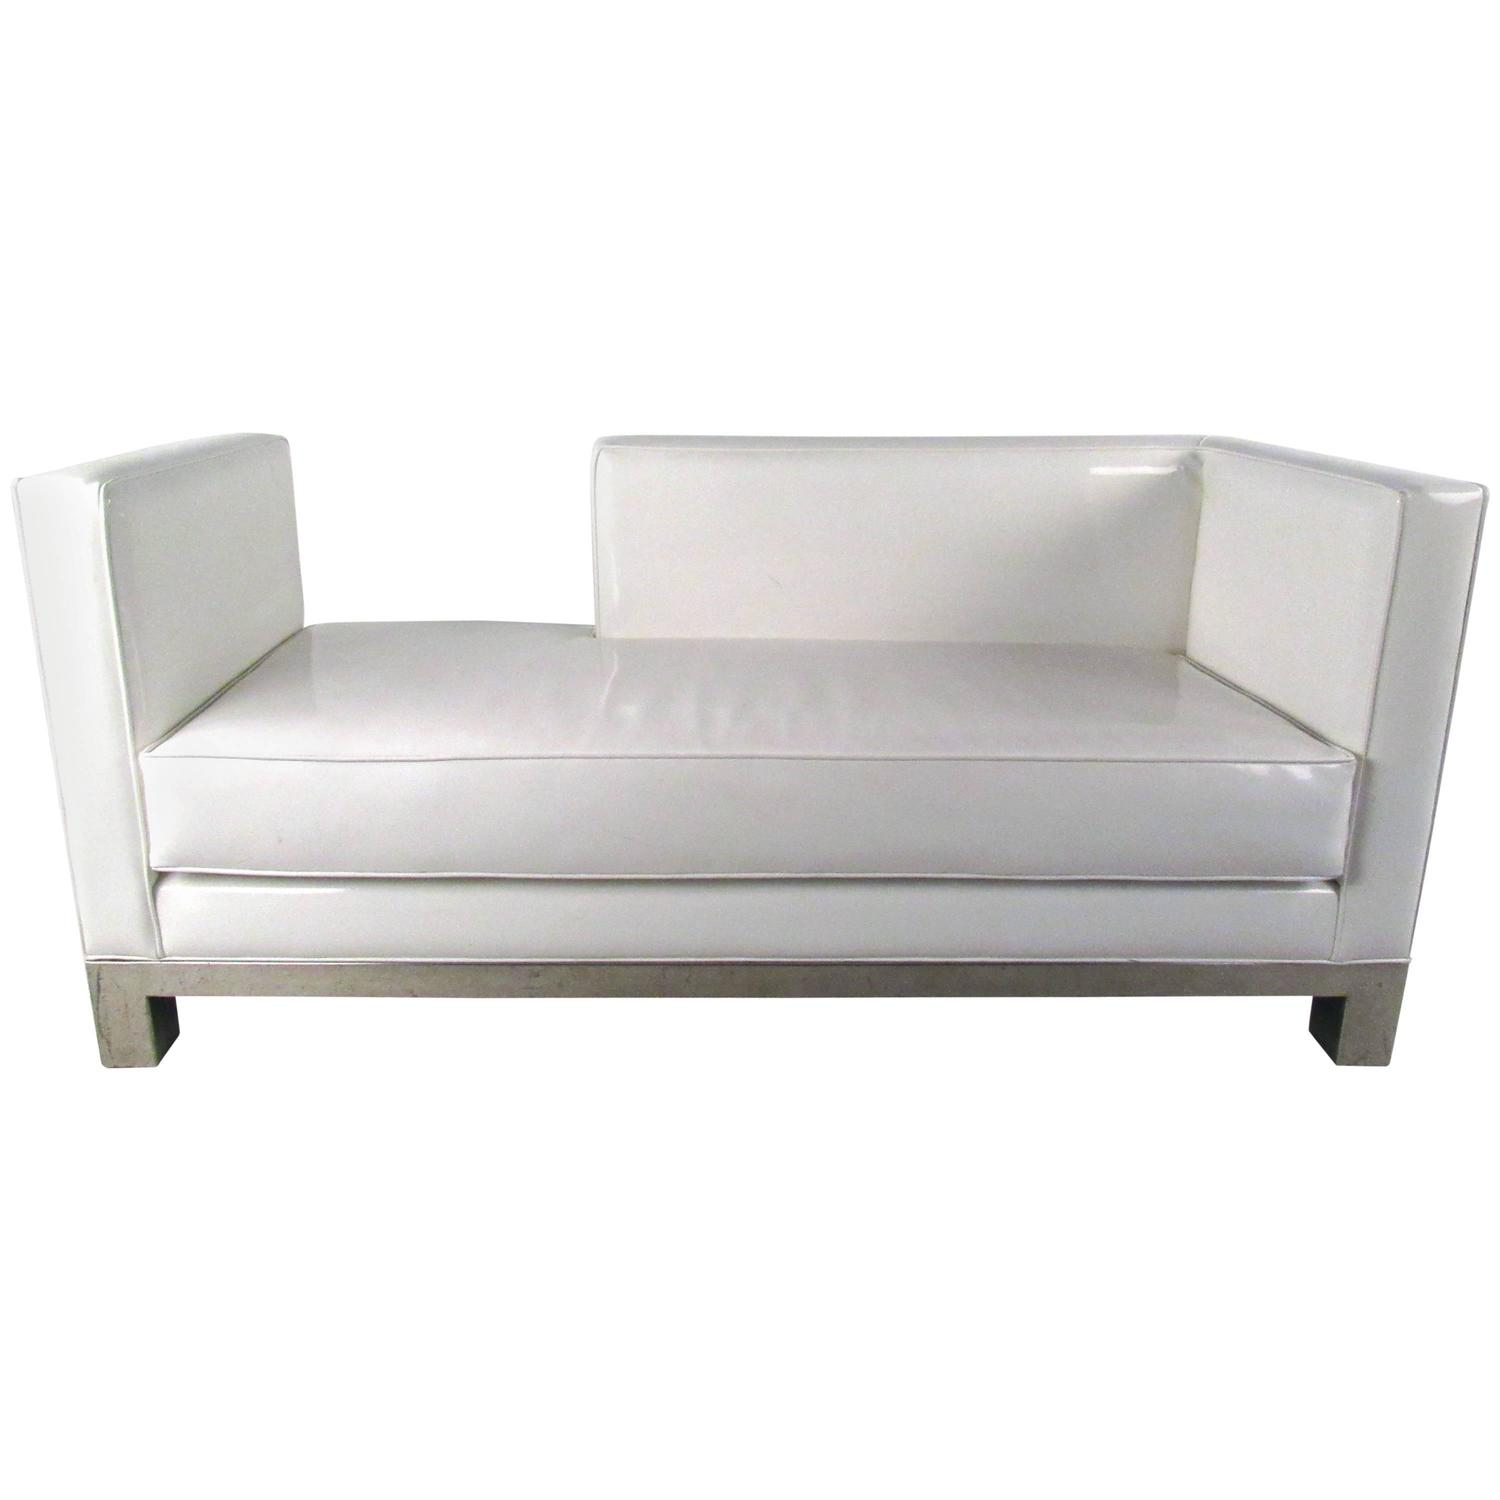 Mid century modern style chaise lounge sofa for sale at for Mid century sectional sofa for sale